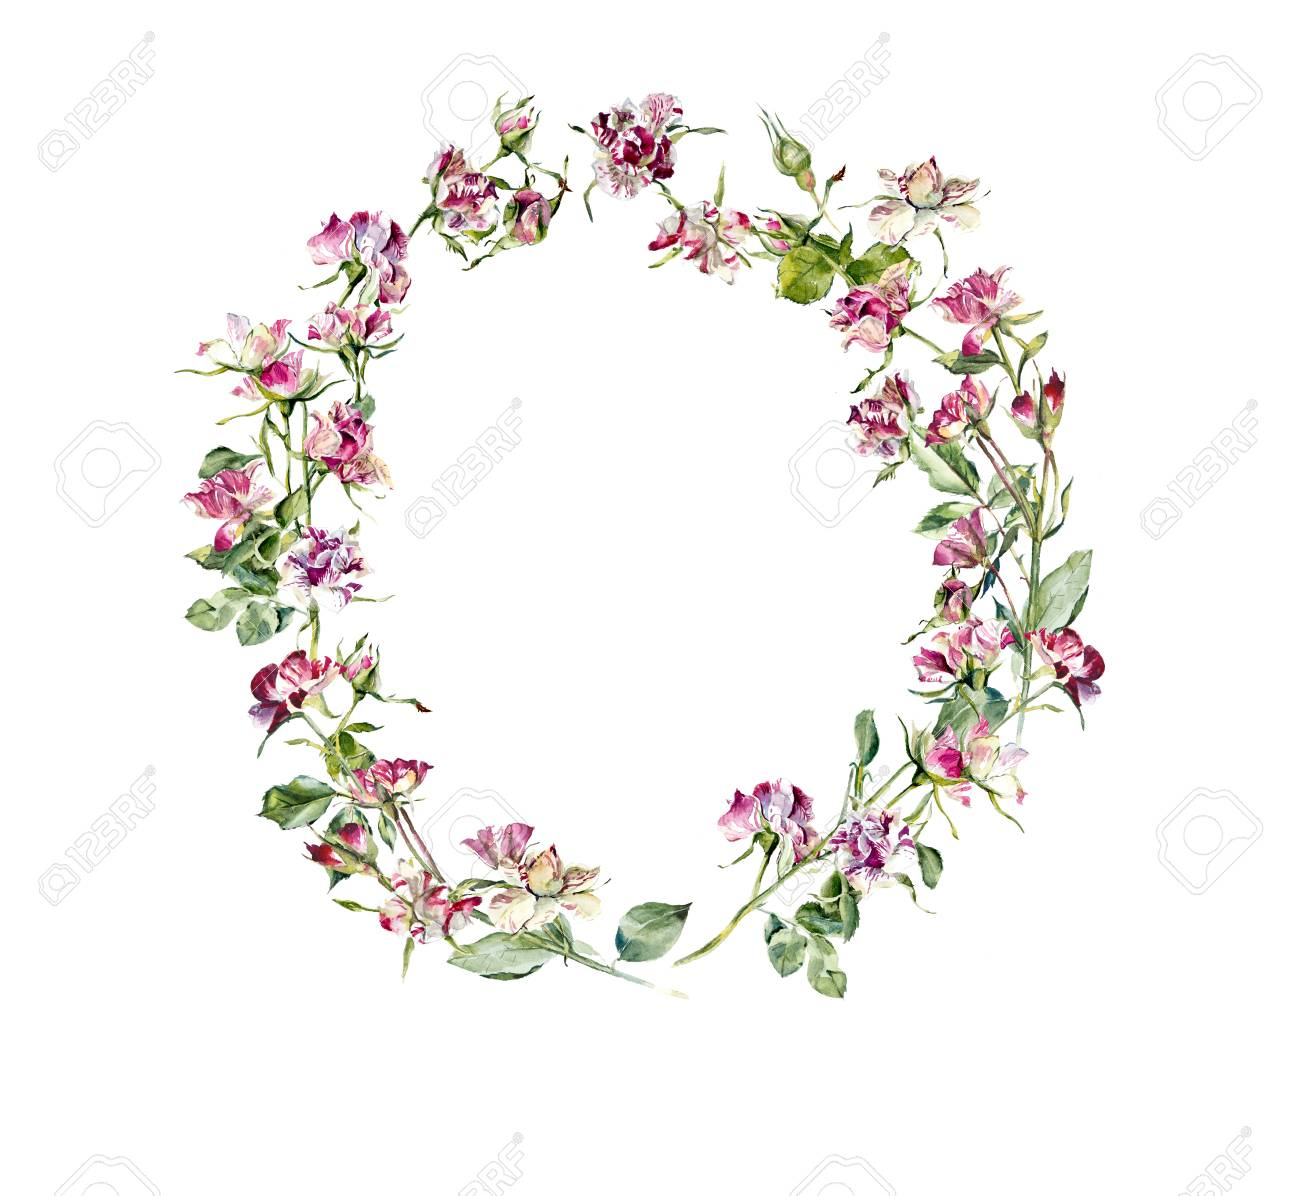 Circle frame from roses wedding drawings greeting cards flower circle frame from roses wedding drawings greeting cards flower backdrop place for m4hsunfo Choice Image